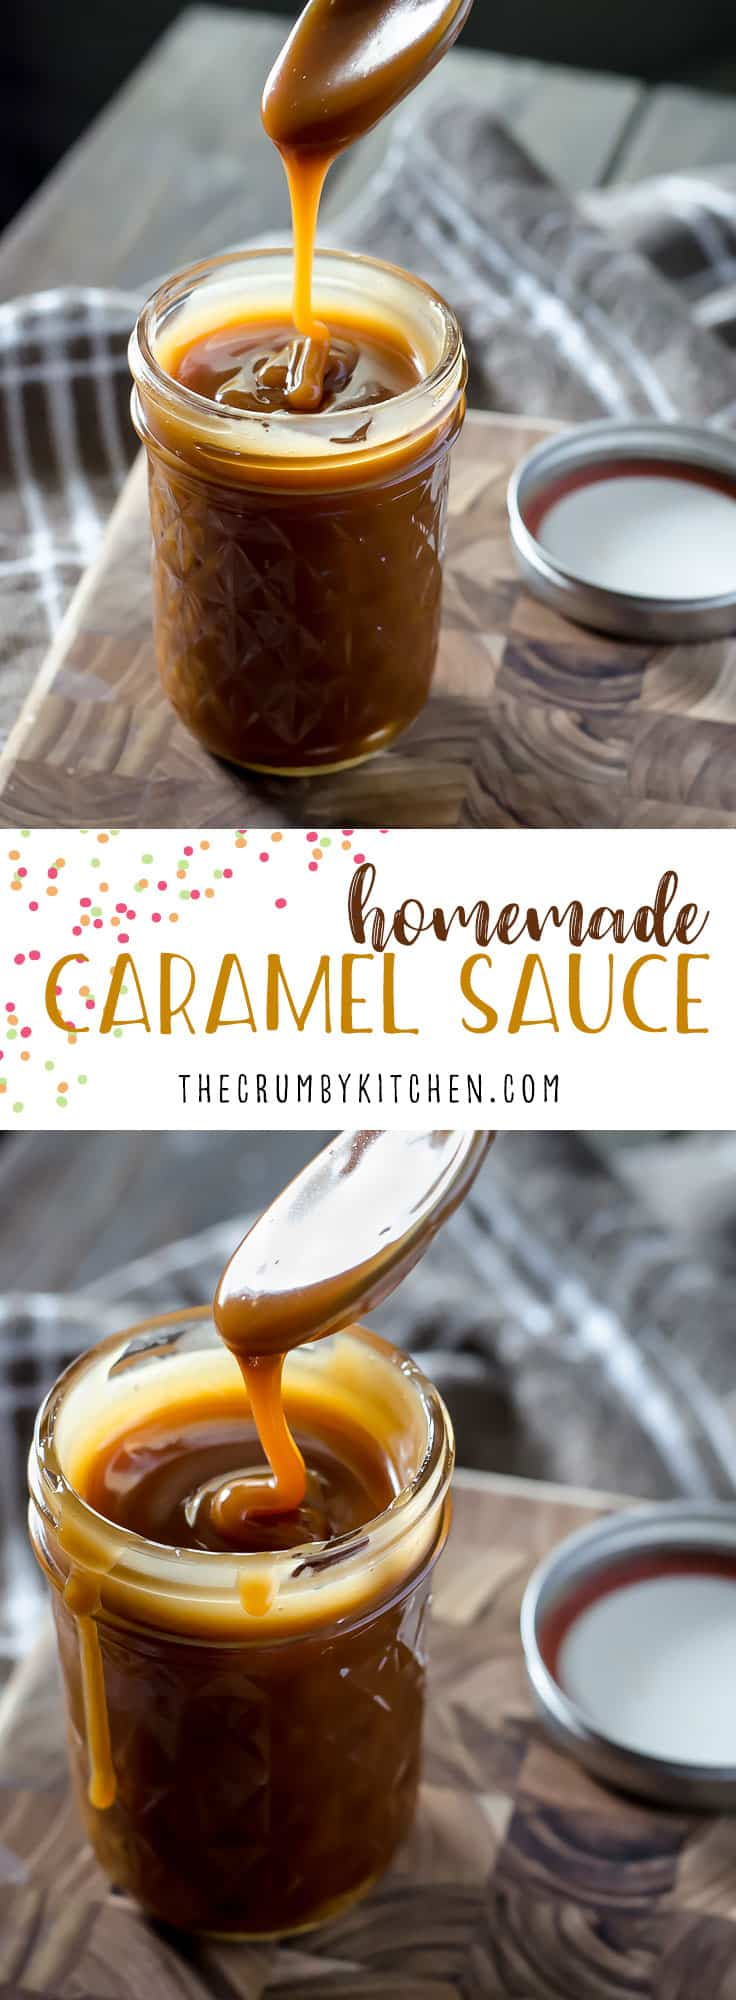 Ditch the store-bought jar! Homemade Caramel Sauce can be yours to drizzle over whatever you please in about 20 minutes with only 3 ingredients!